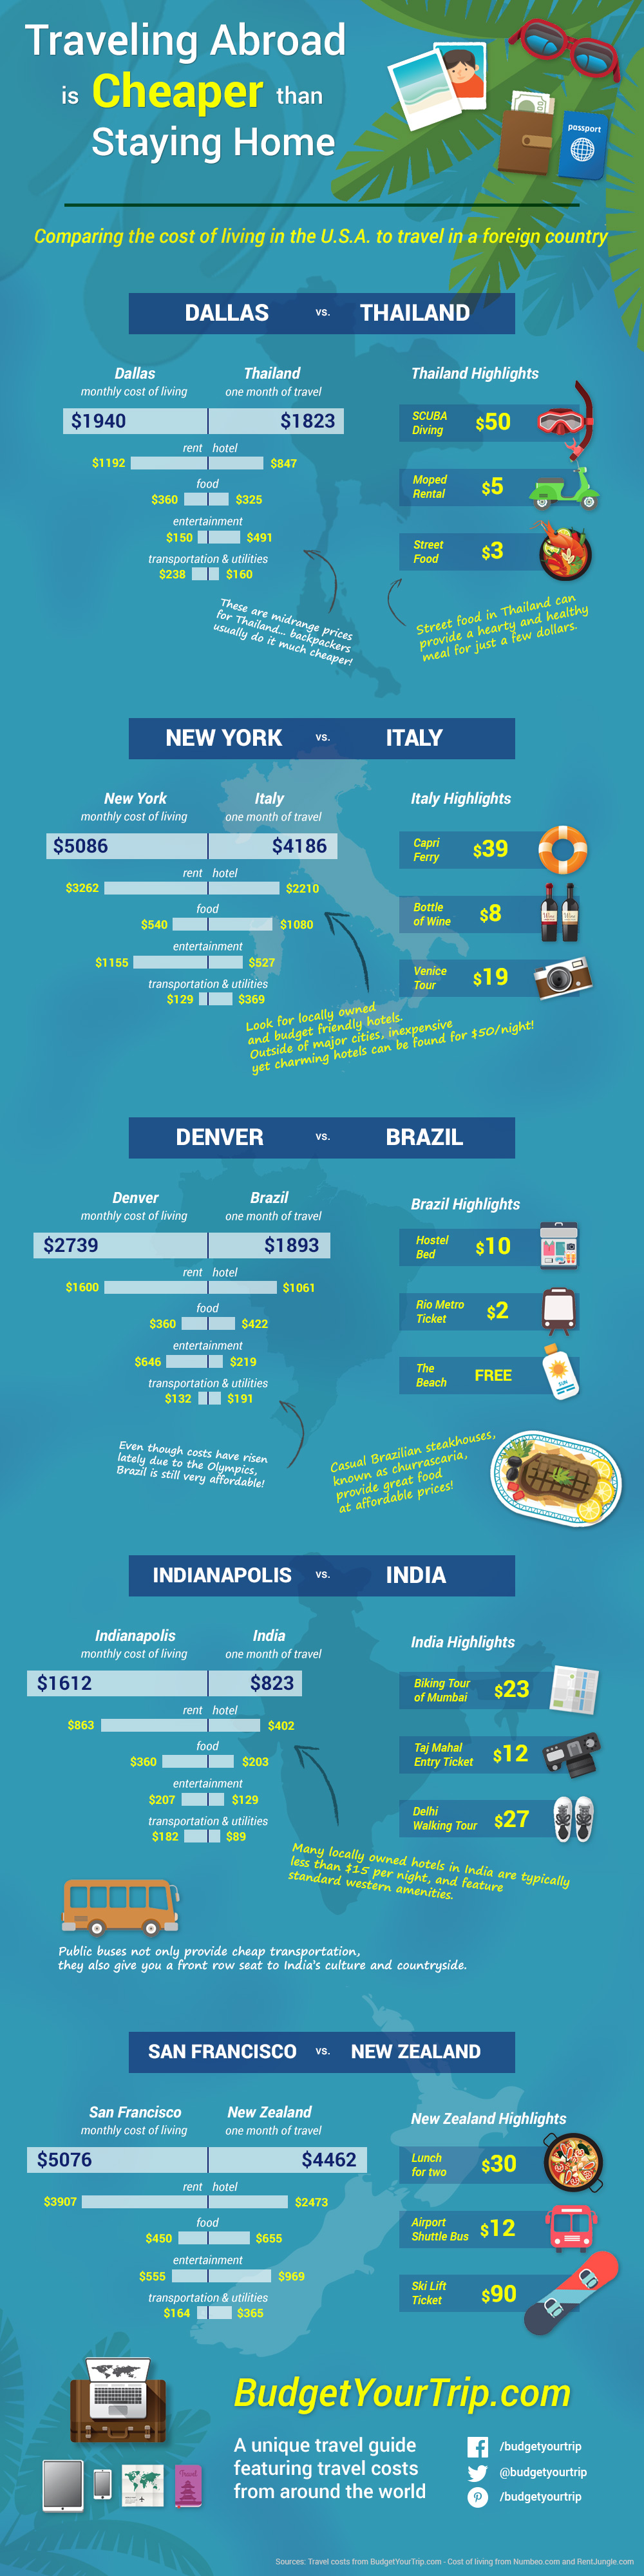 Traveling Abroad is Cheaper than Staying Home Infographic